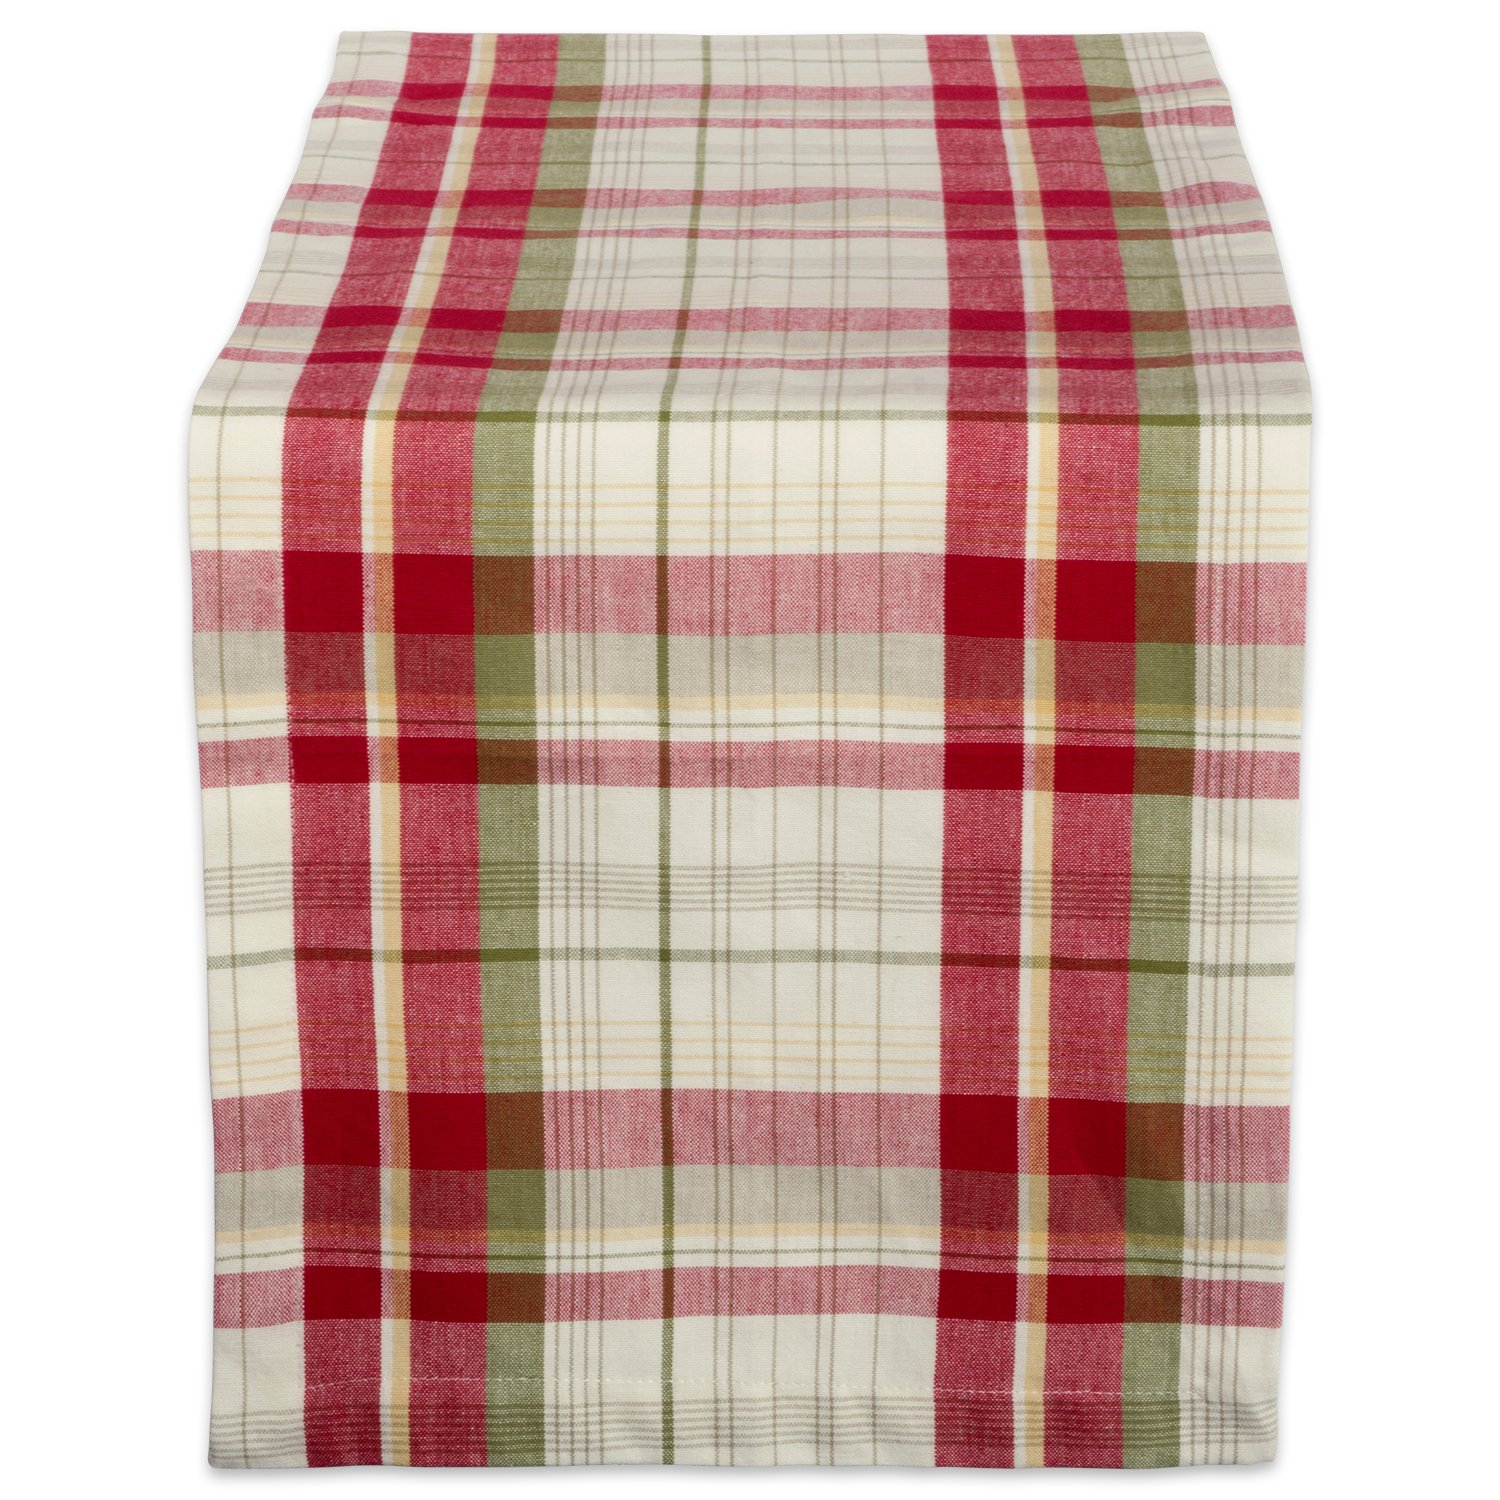 Orchard Plaid Cotton Fabric Christmas Table Runner - ChristmasTablescapeDecor.com